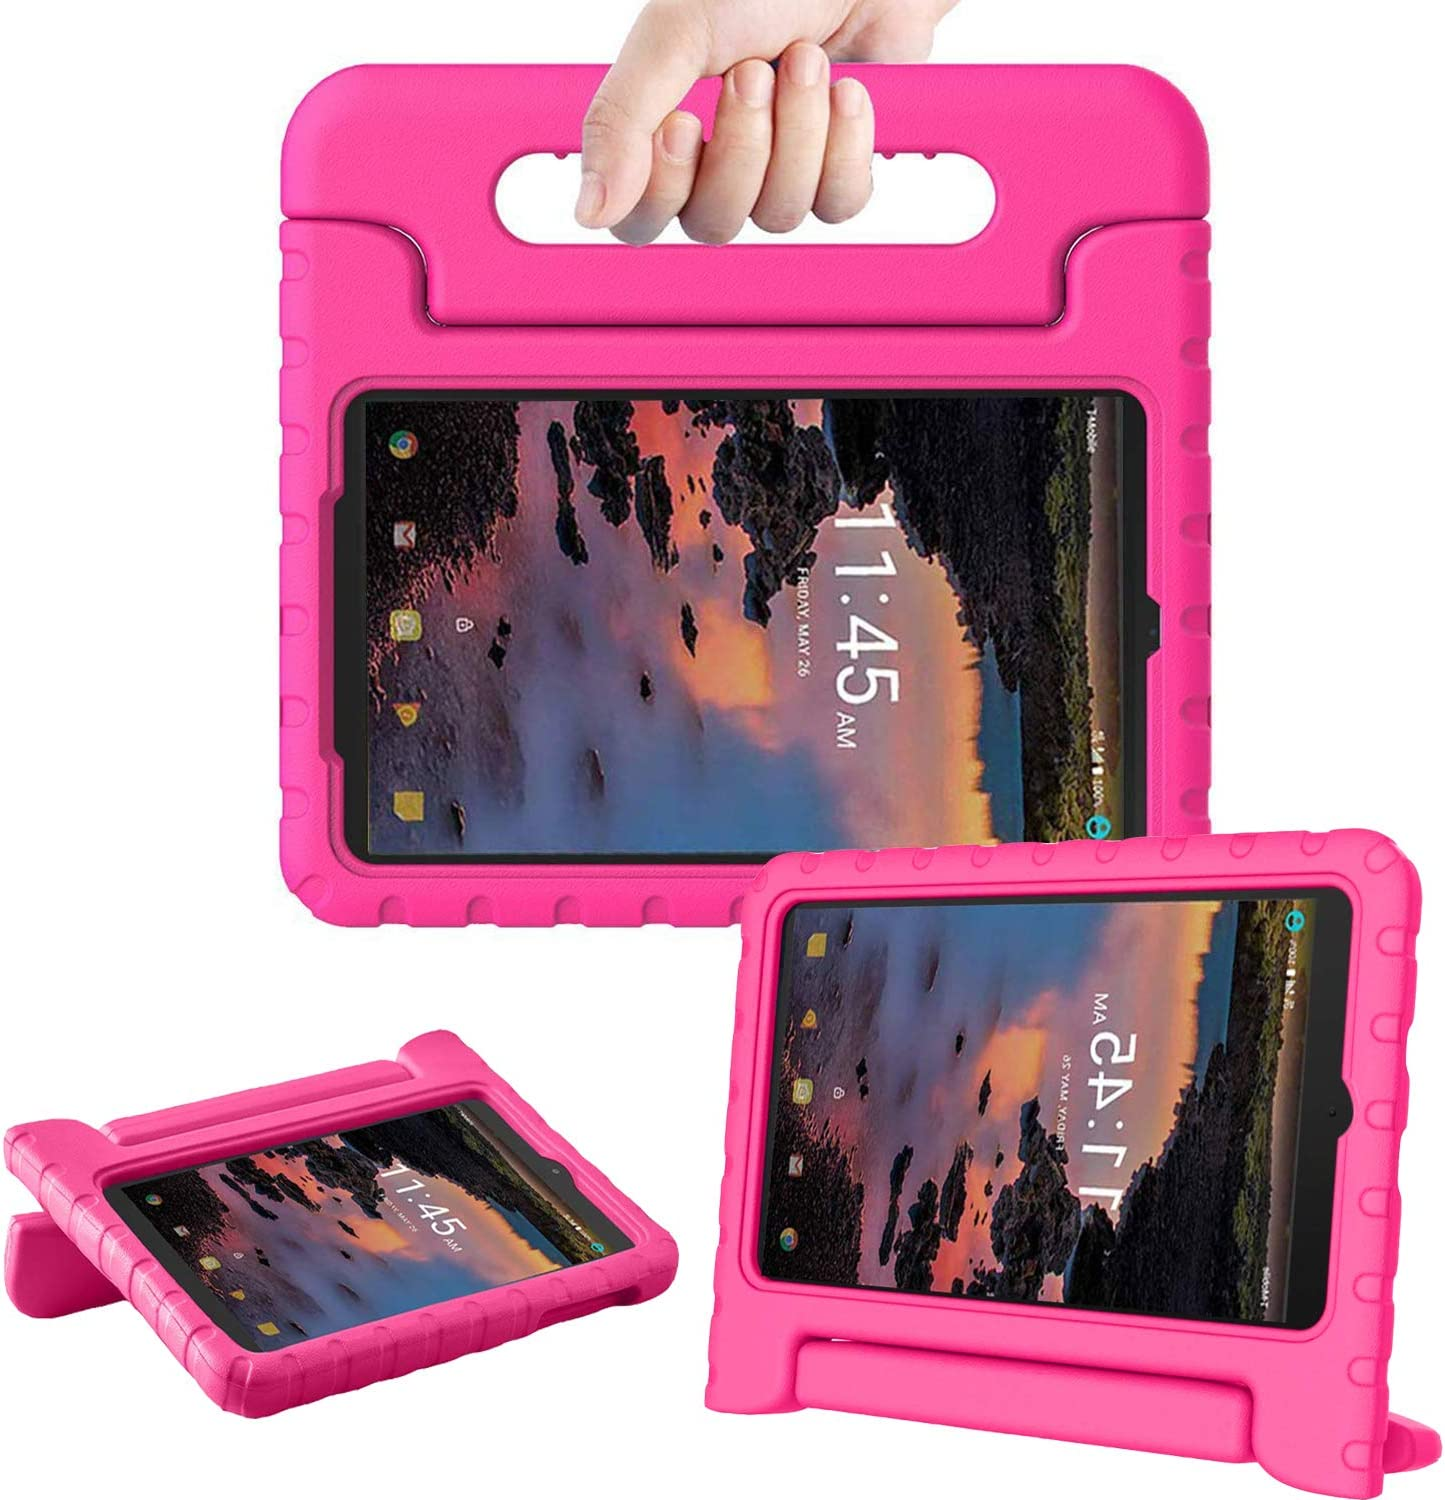 TIRIN Case for Alcatel Joy Tab 8/ Alcatel 3T/ A30 8 Tablet - Light Weight Shock Proof Convertible Handle Stand Kids Case for Alcatel Joy Tab 2019/ Alcatel 3T 2018/ Alcatel A30 2017 8-inch Tablet, Rose